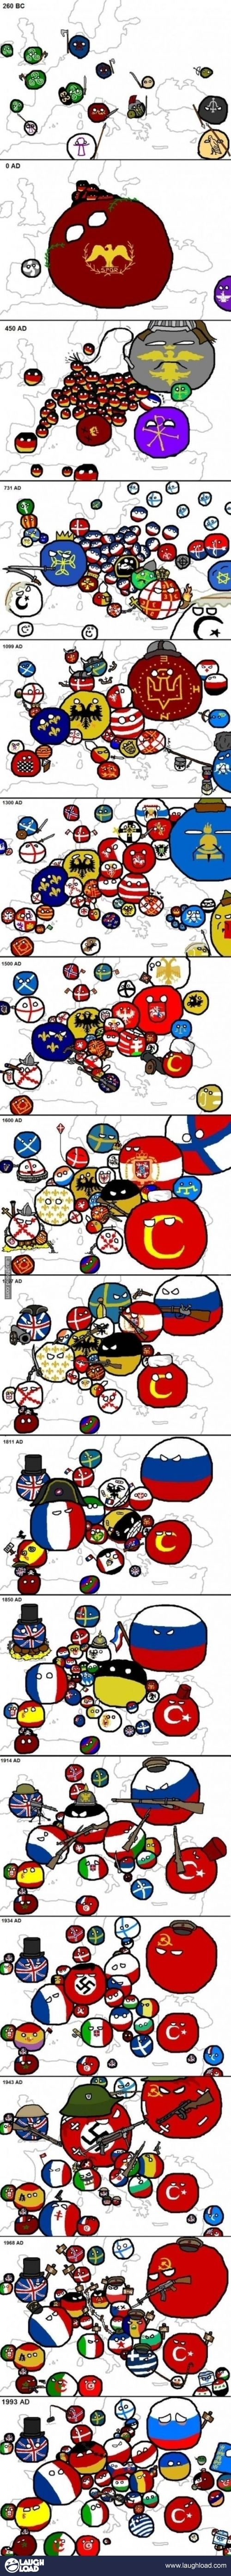 The history of Europe made easy